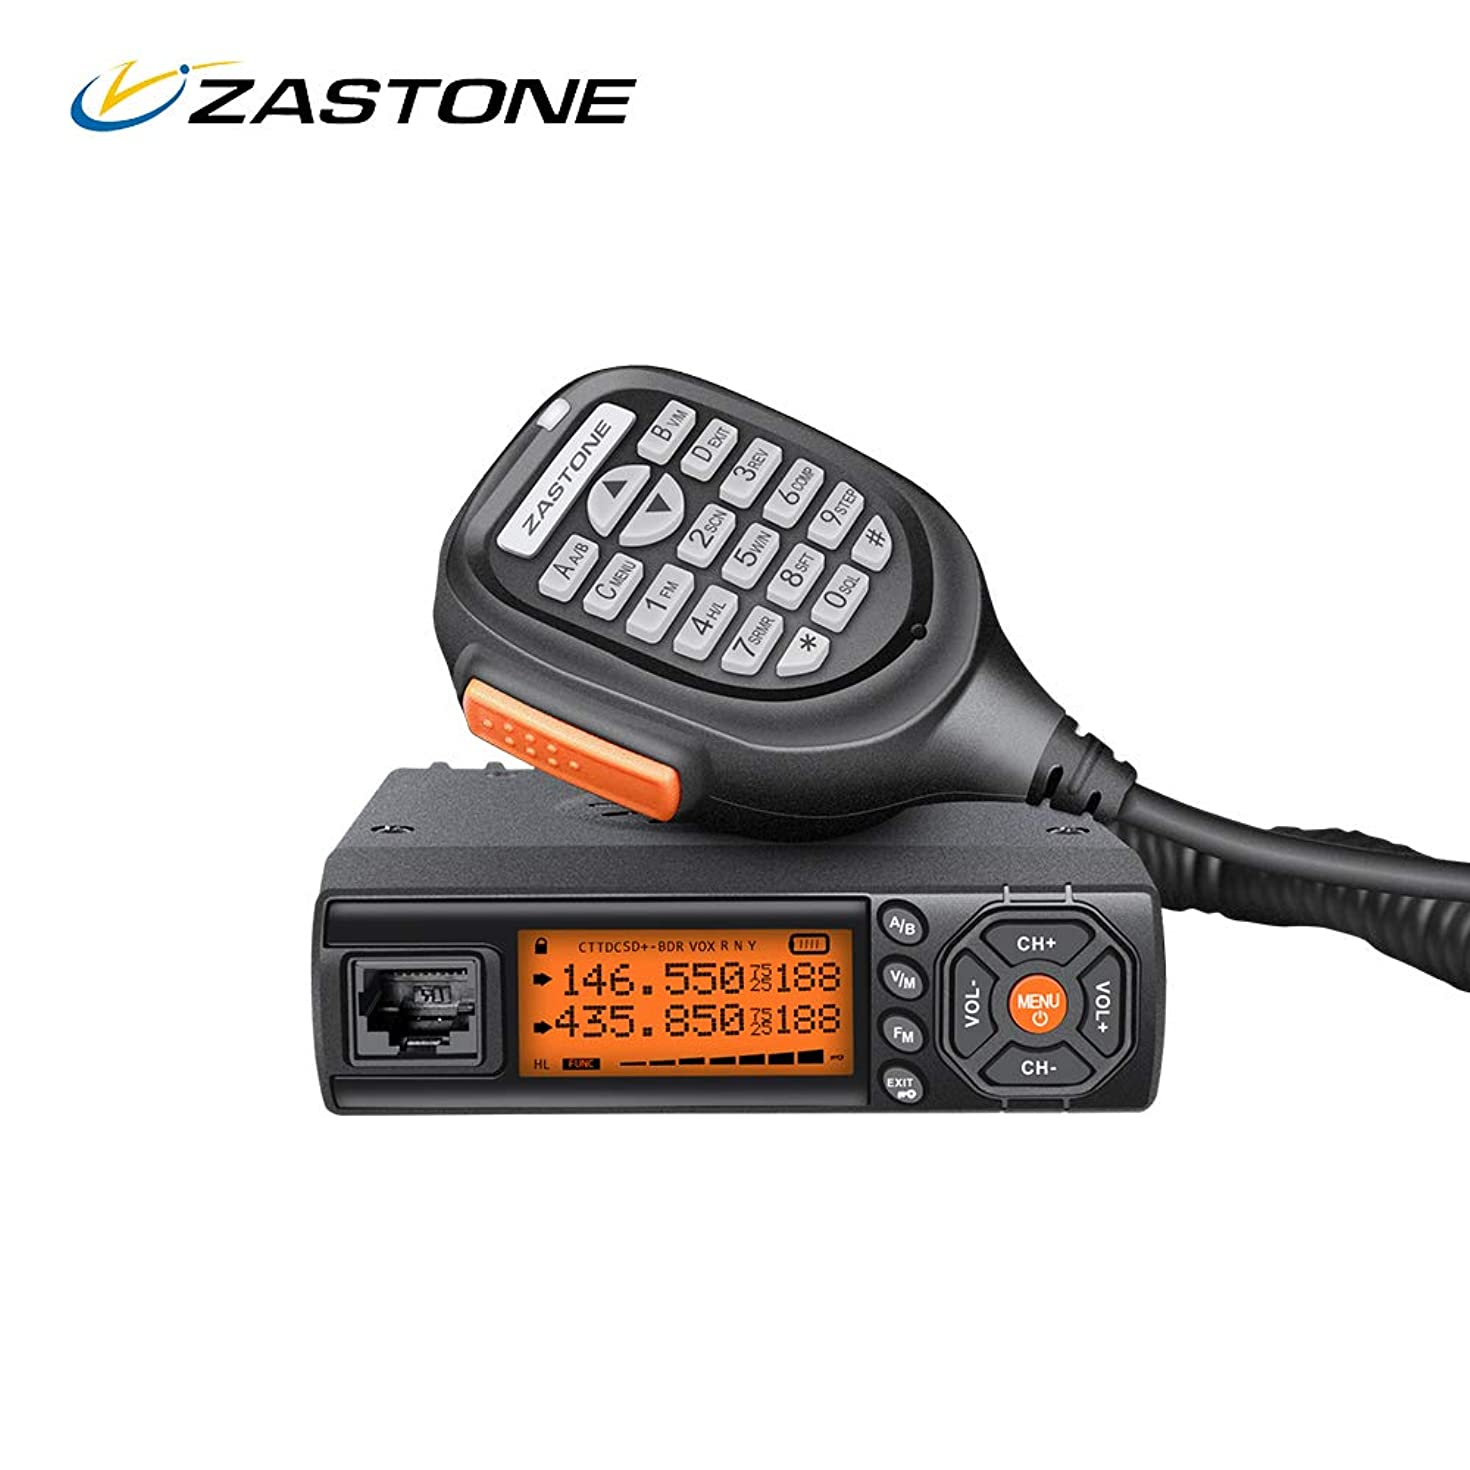 Zastone Mini Z218 25 Watt Dual Band Base, Mobile Radio: 136-174mhz (VHF) 400-470mhz (UHF) Amateur Transceiver for Car